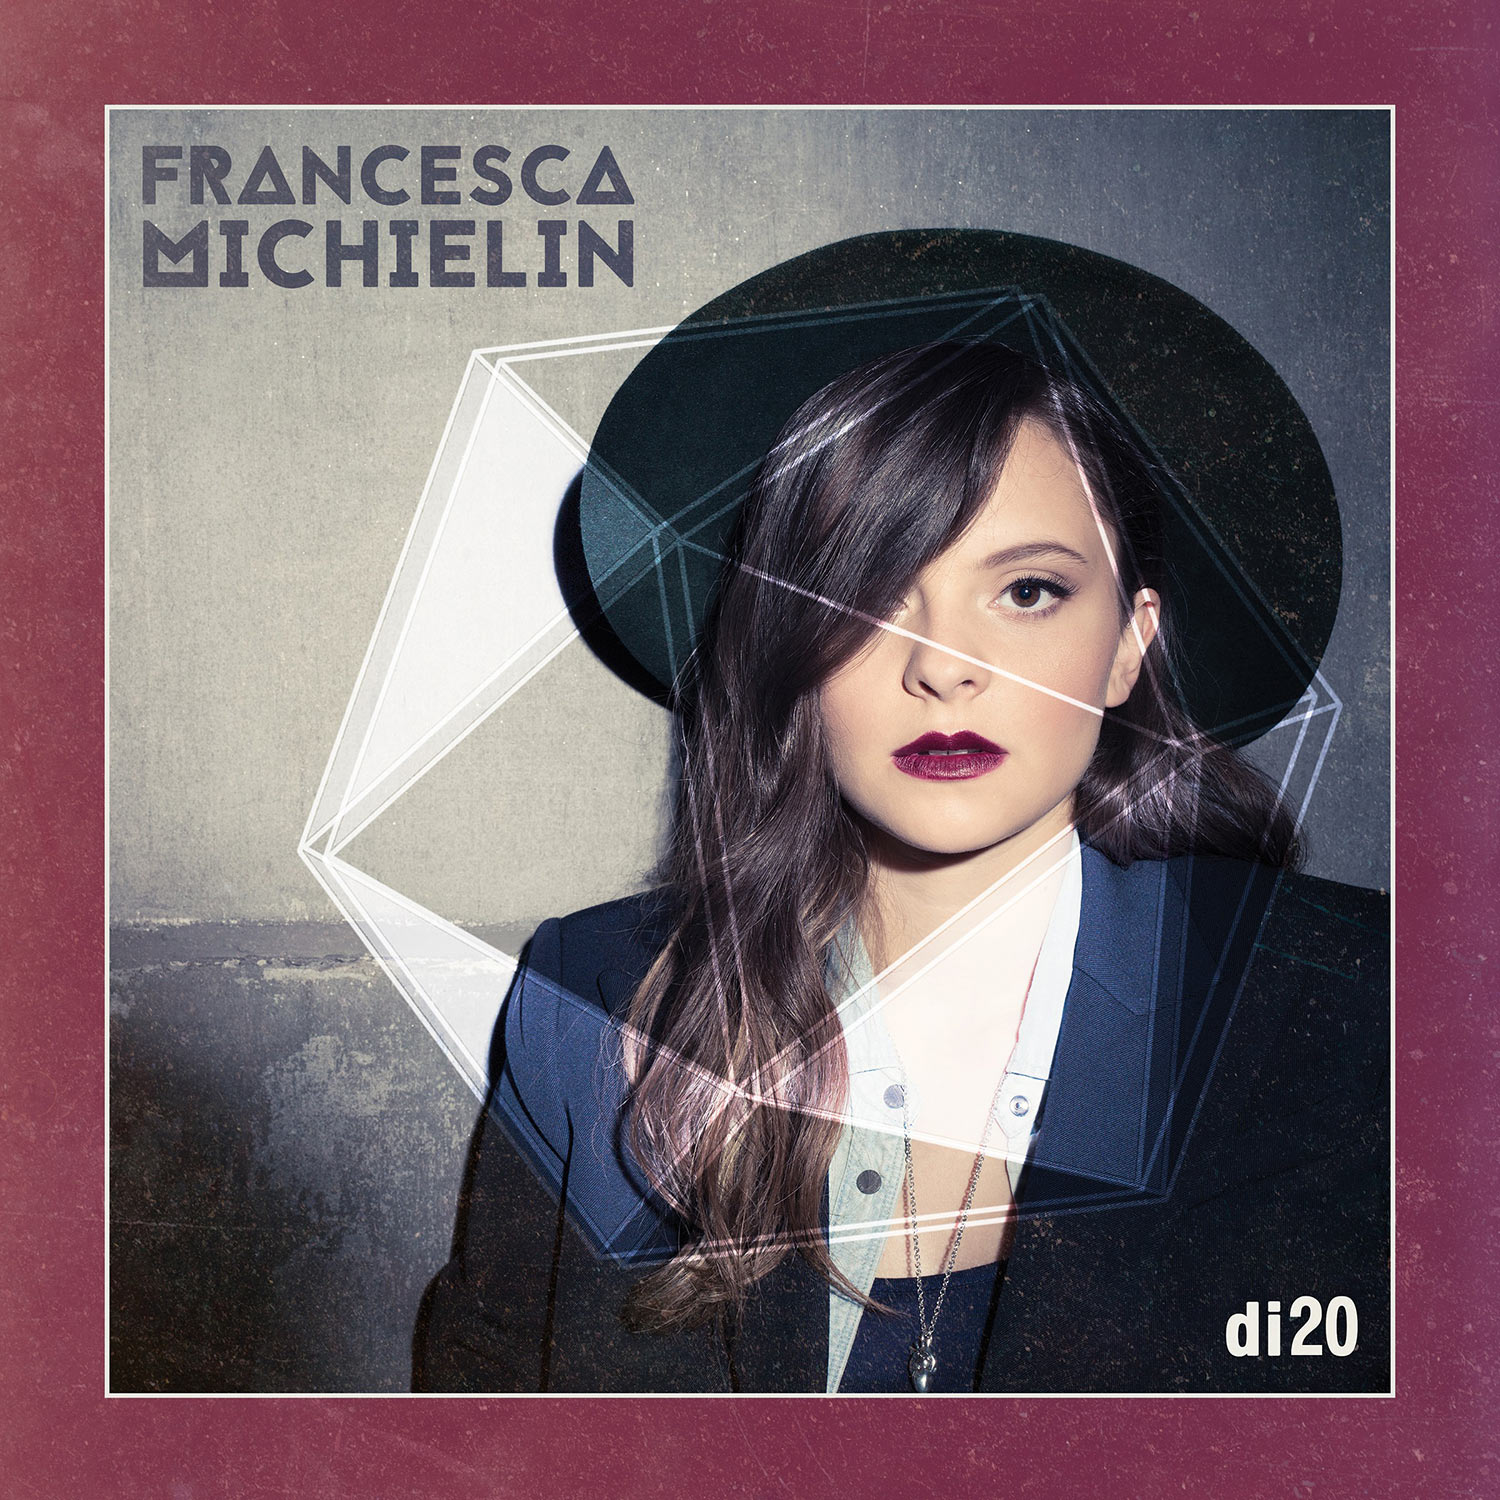 FRANCESCA_MICHIELIN_di20_bassa-low